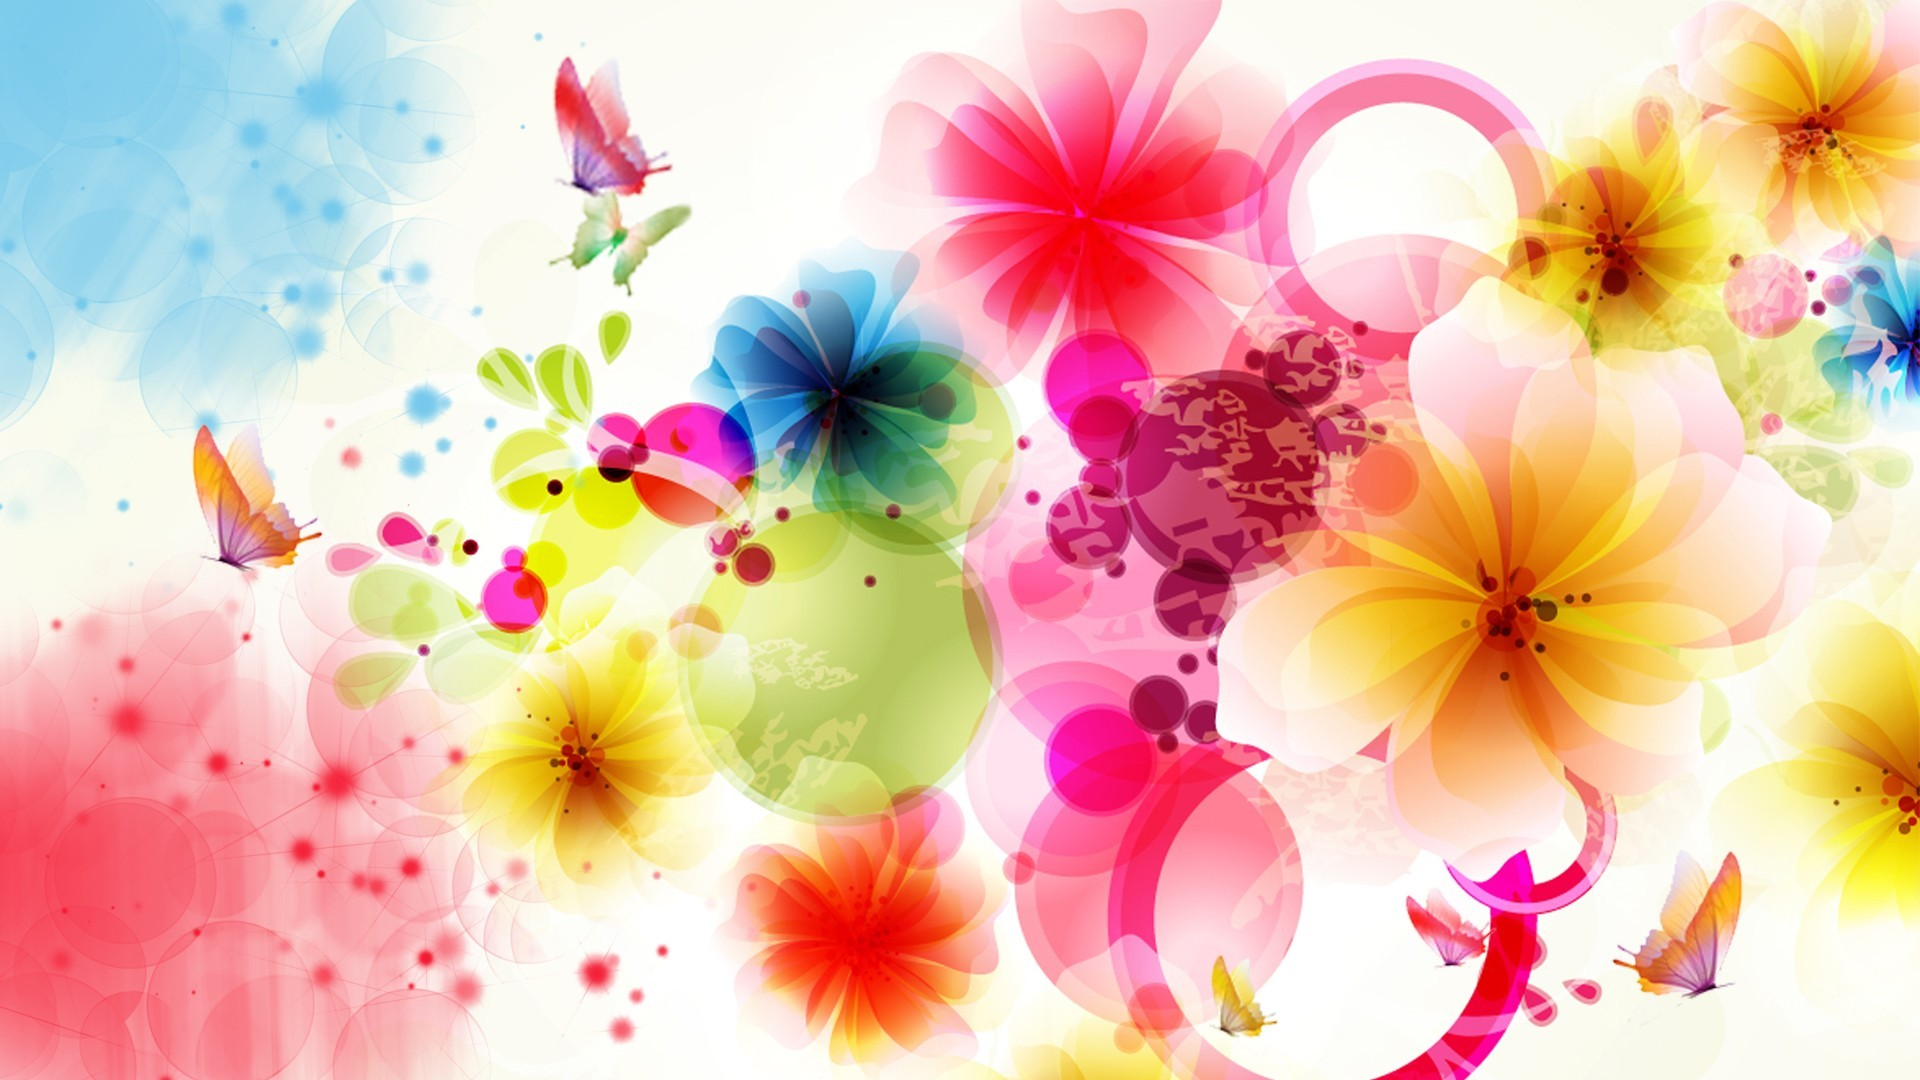 Abstract Flower Wallpaper High Definition High Quality Widescreen amazing  Wallpapers